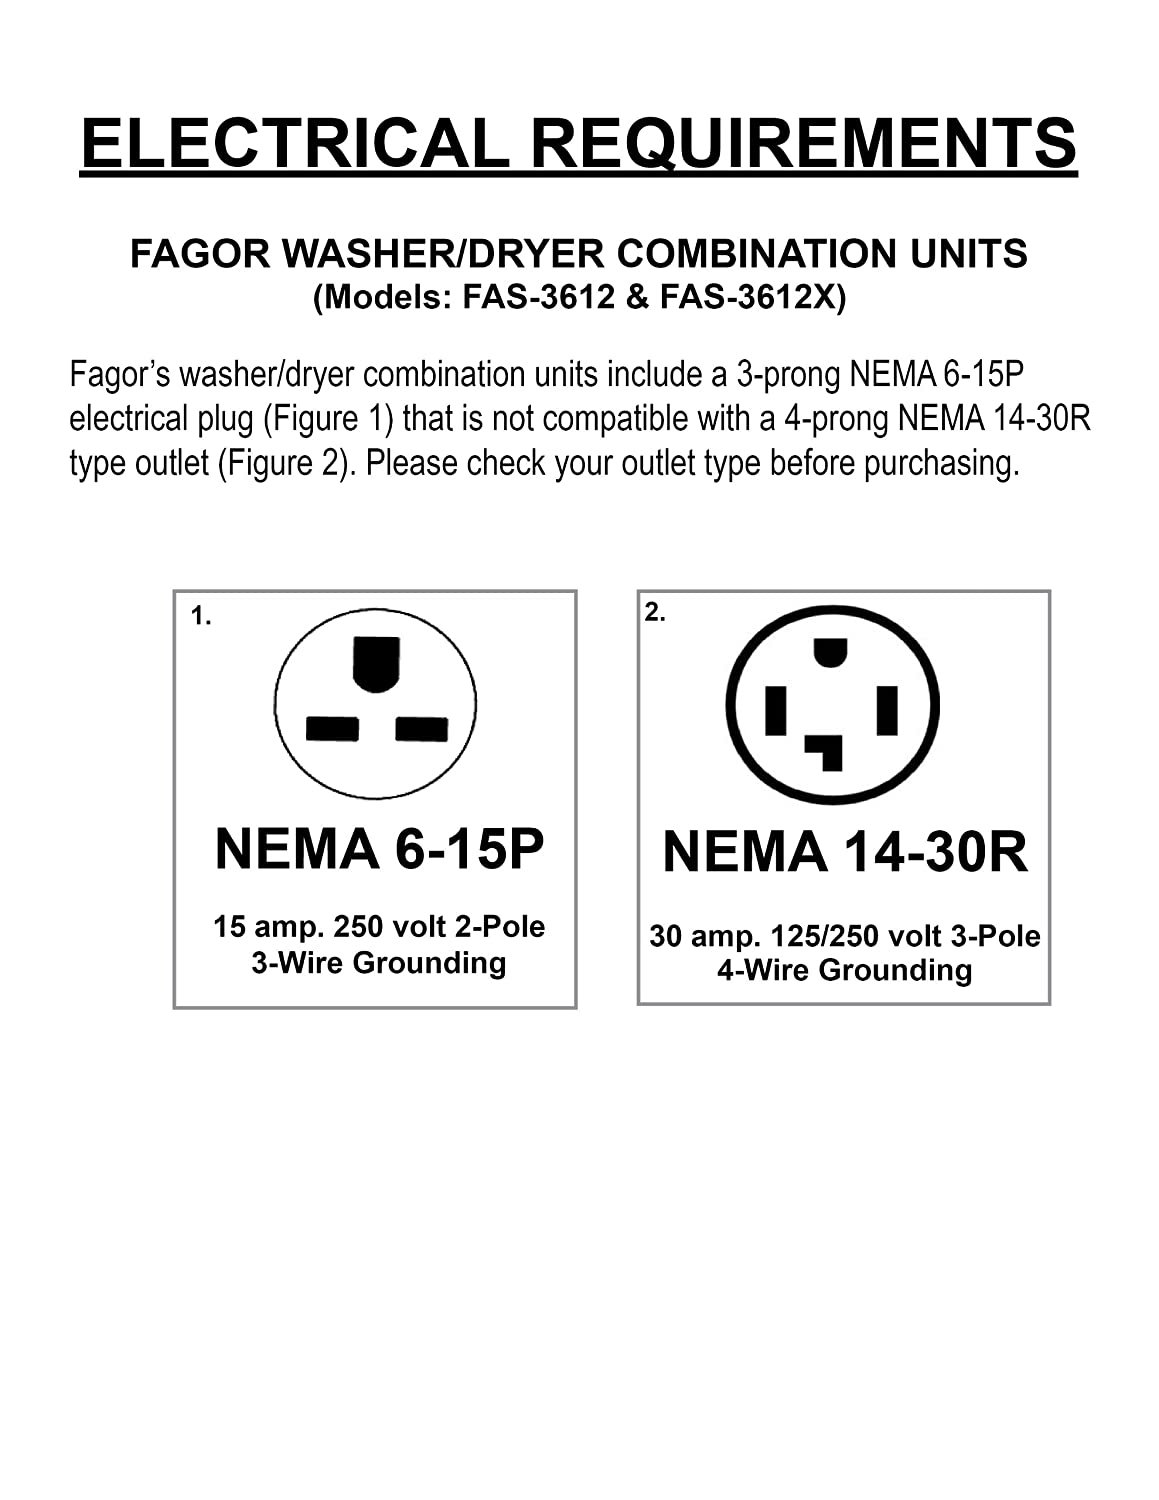 Amazon com: Fagor FAS3612X 24-Inch Washer/Dryer Combination